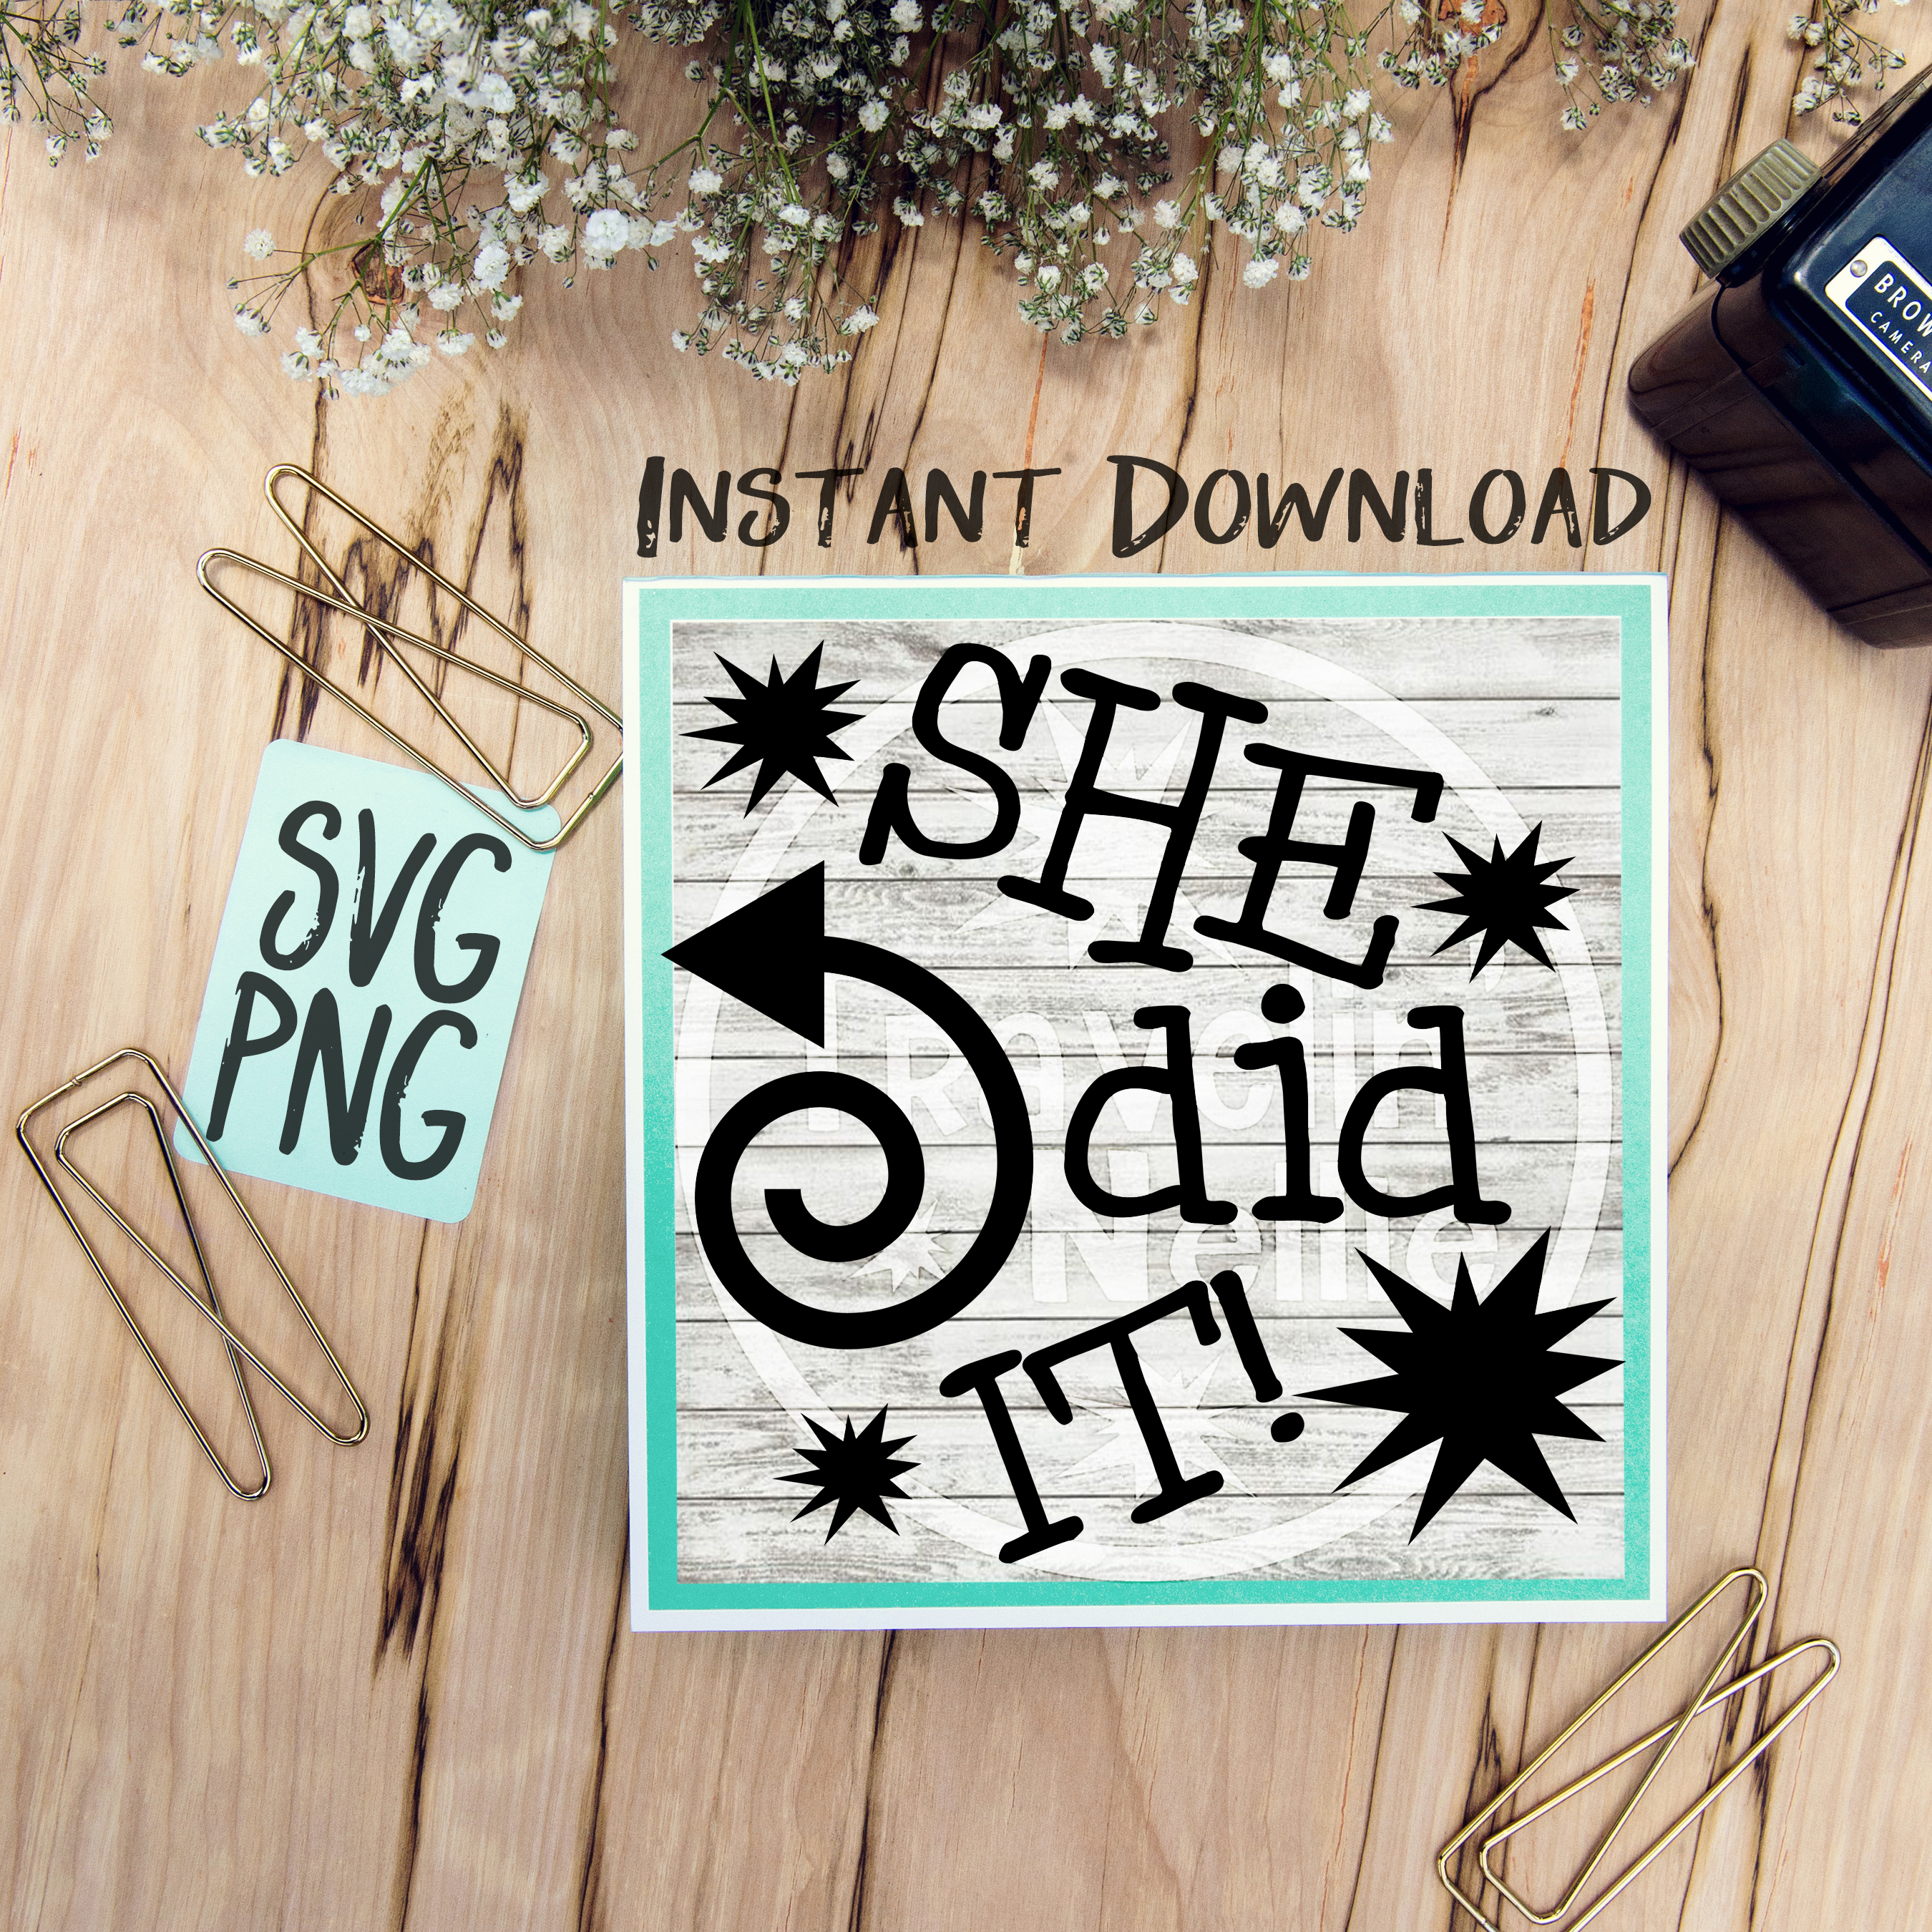 He Did It She Did It Twin Cousin Siblings SVG PNG Image Design for Cut Machines Print DIY Design Brother Cricut Cameo Cutout  example image 3